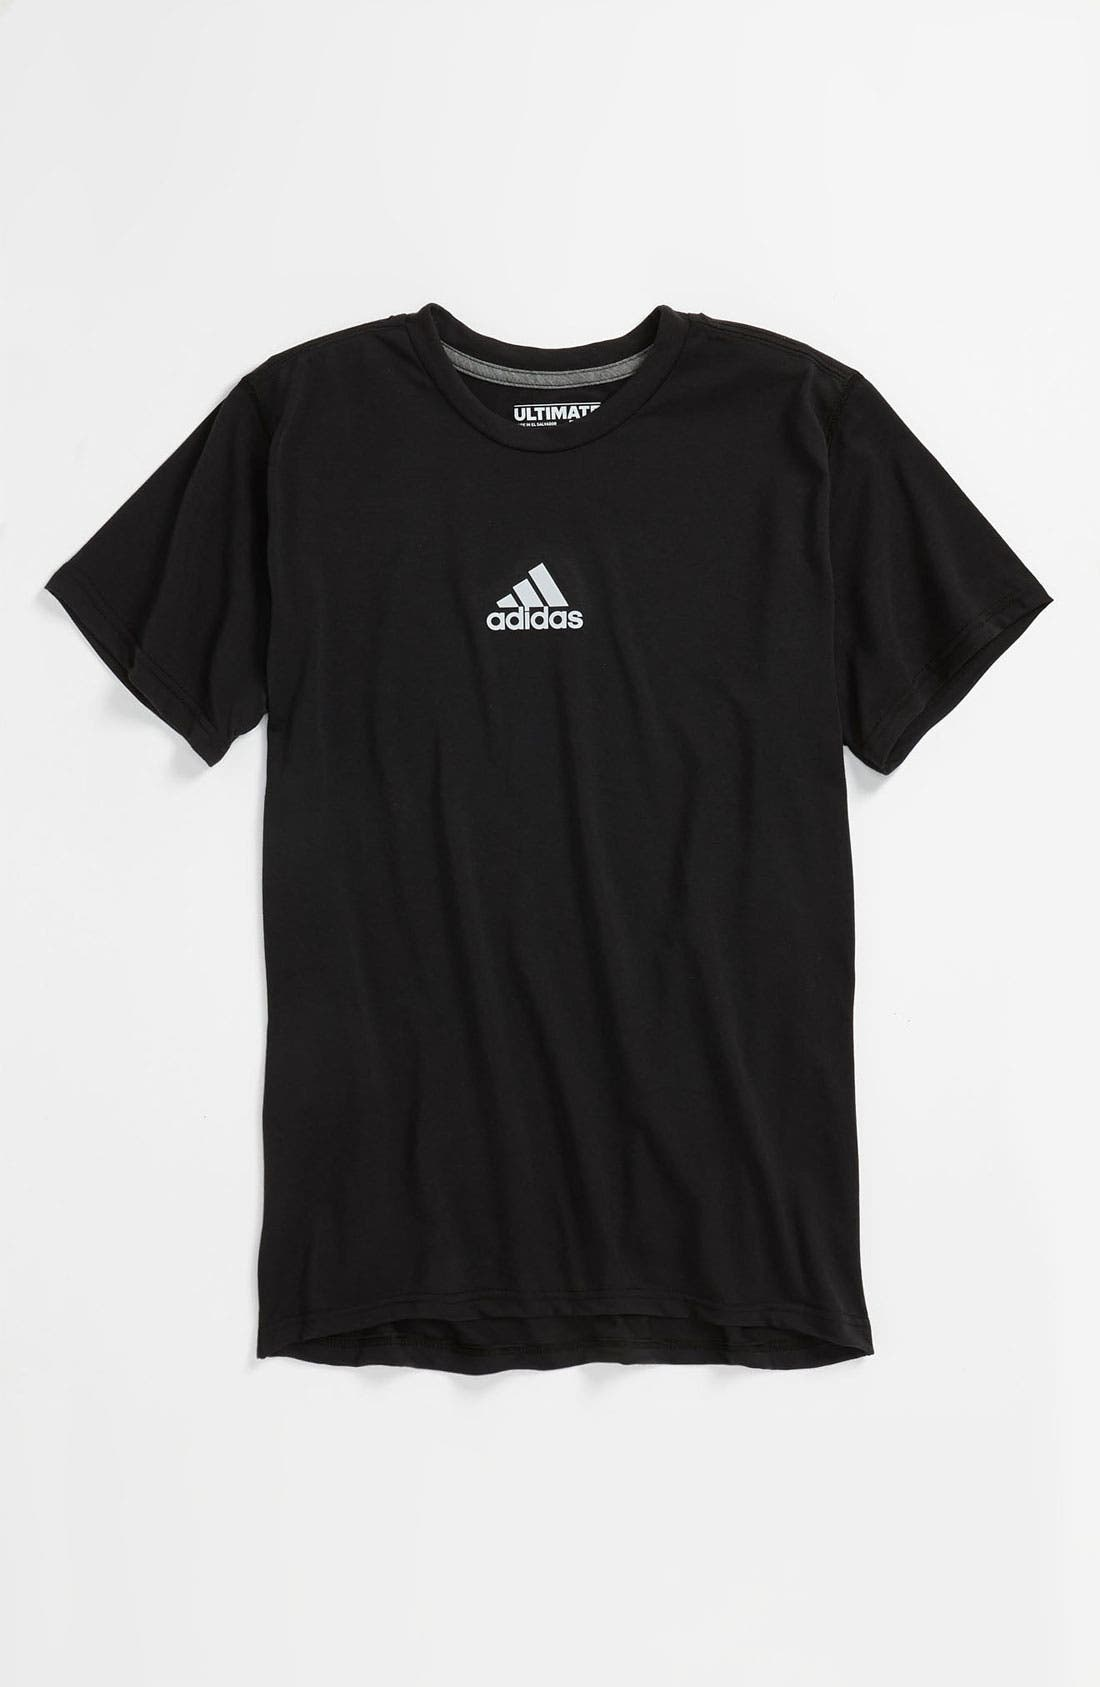 Alternate Image 1 Selected - adidas 'Ultimate' T-Shirt (Big Boys)